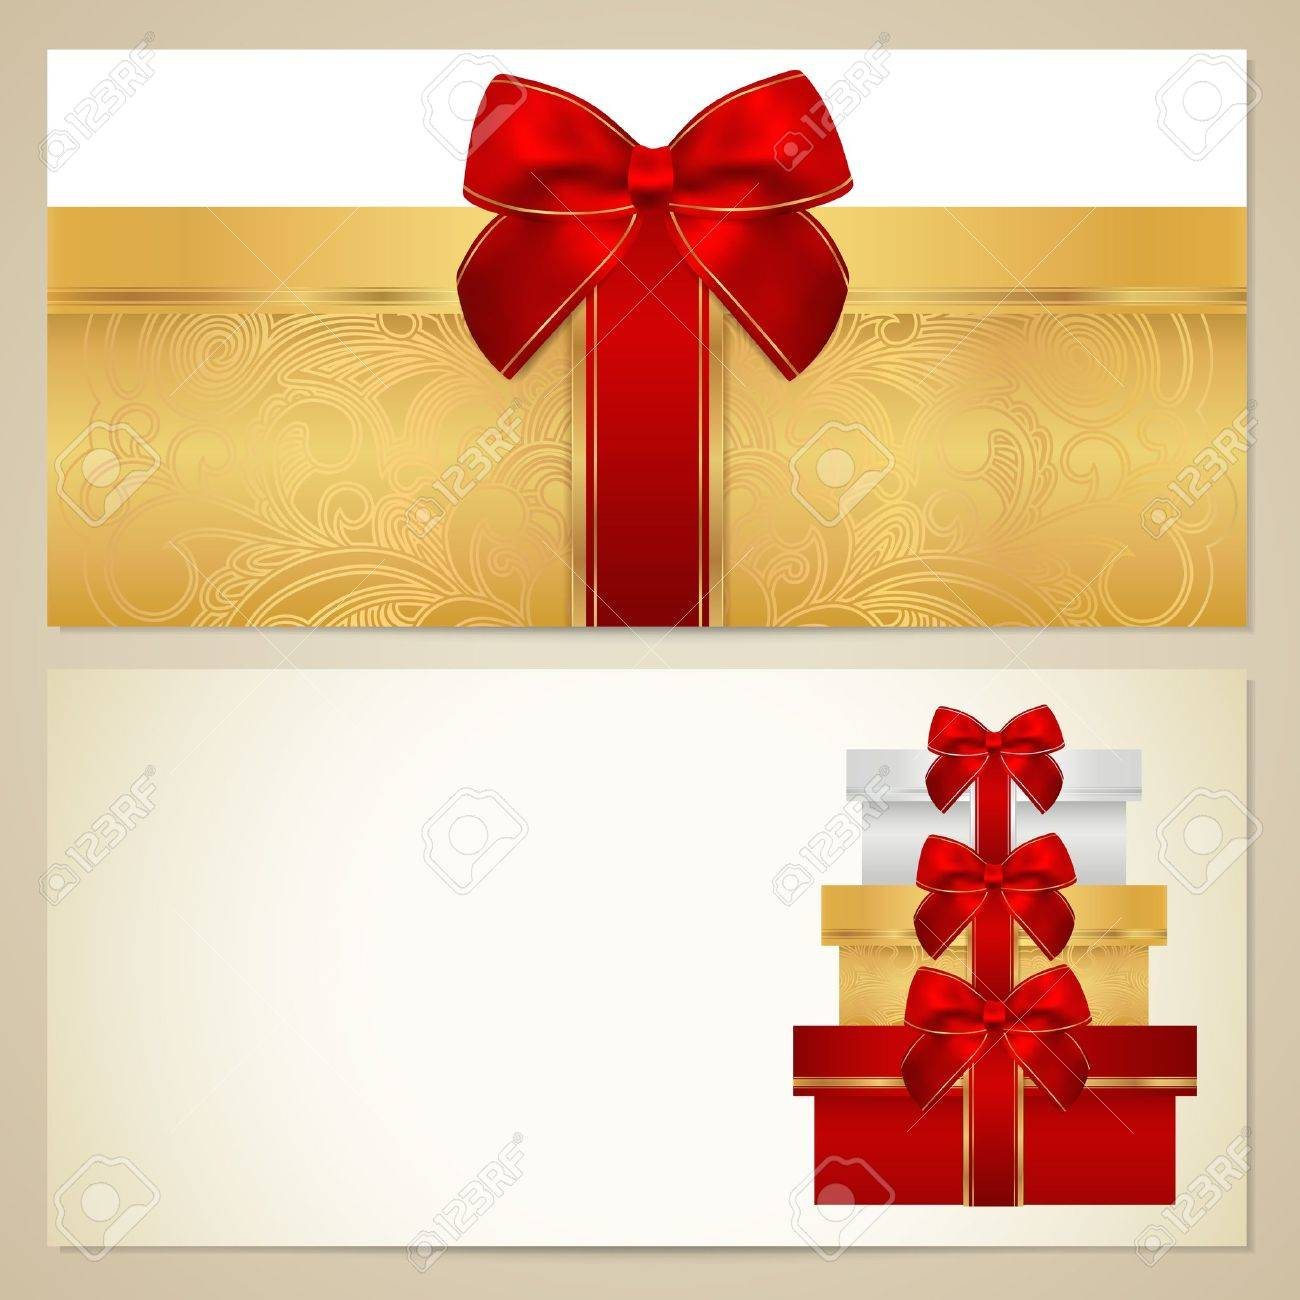 christmas gift certificate stock photos images royalty christmas gift certificate voucher gift certificate coupon template present boxes